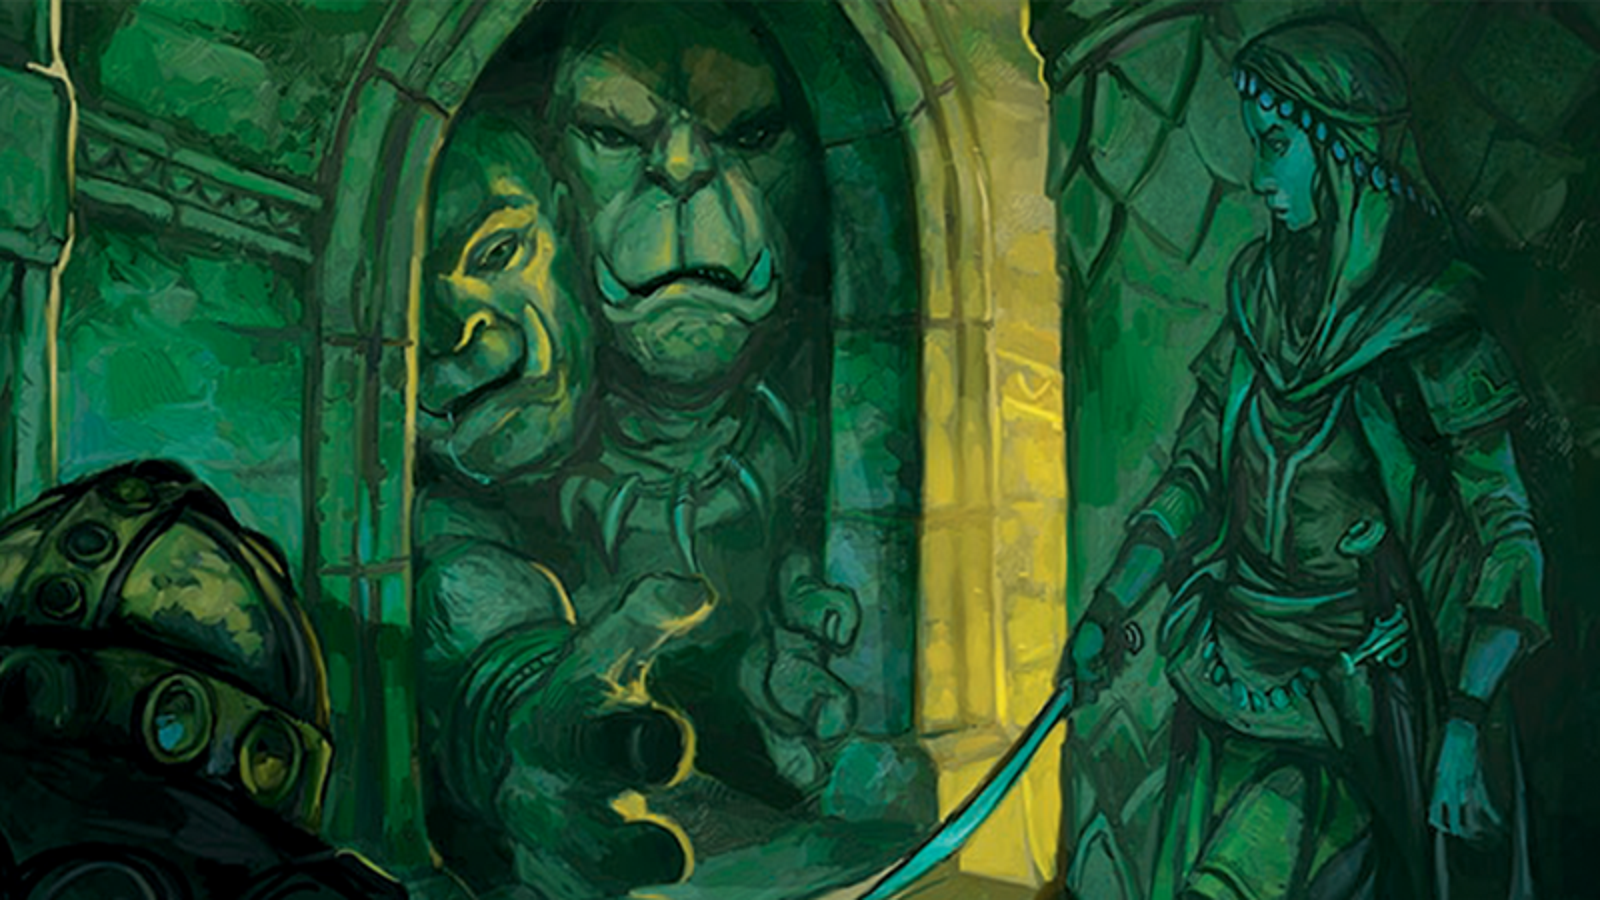 Wizards of the Coast Wants You to Photoshop Your Own Dungeons & Dragons Monster